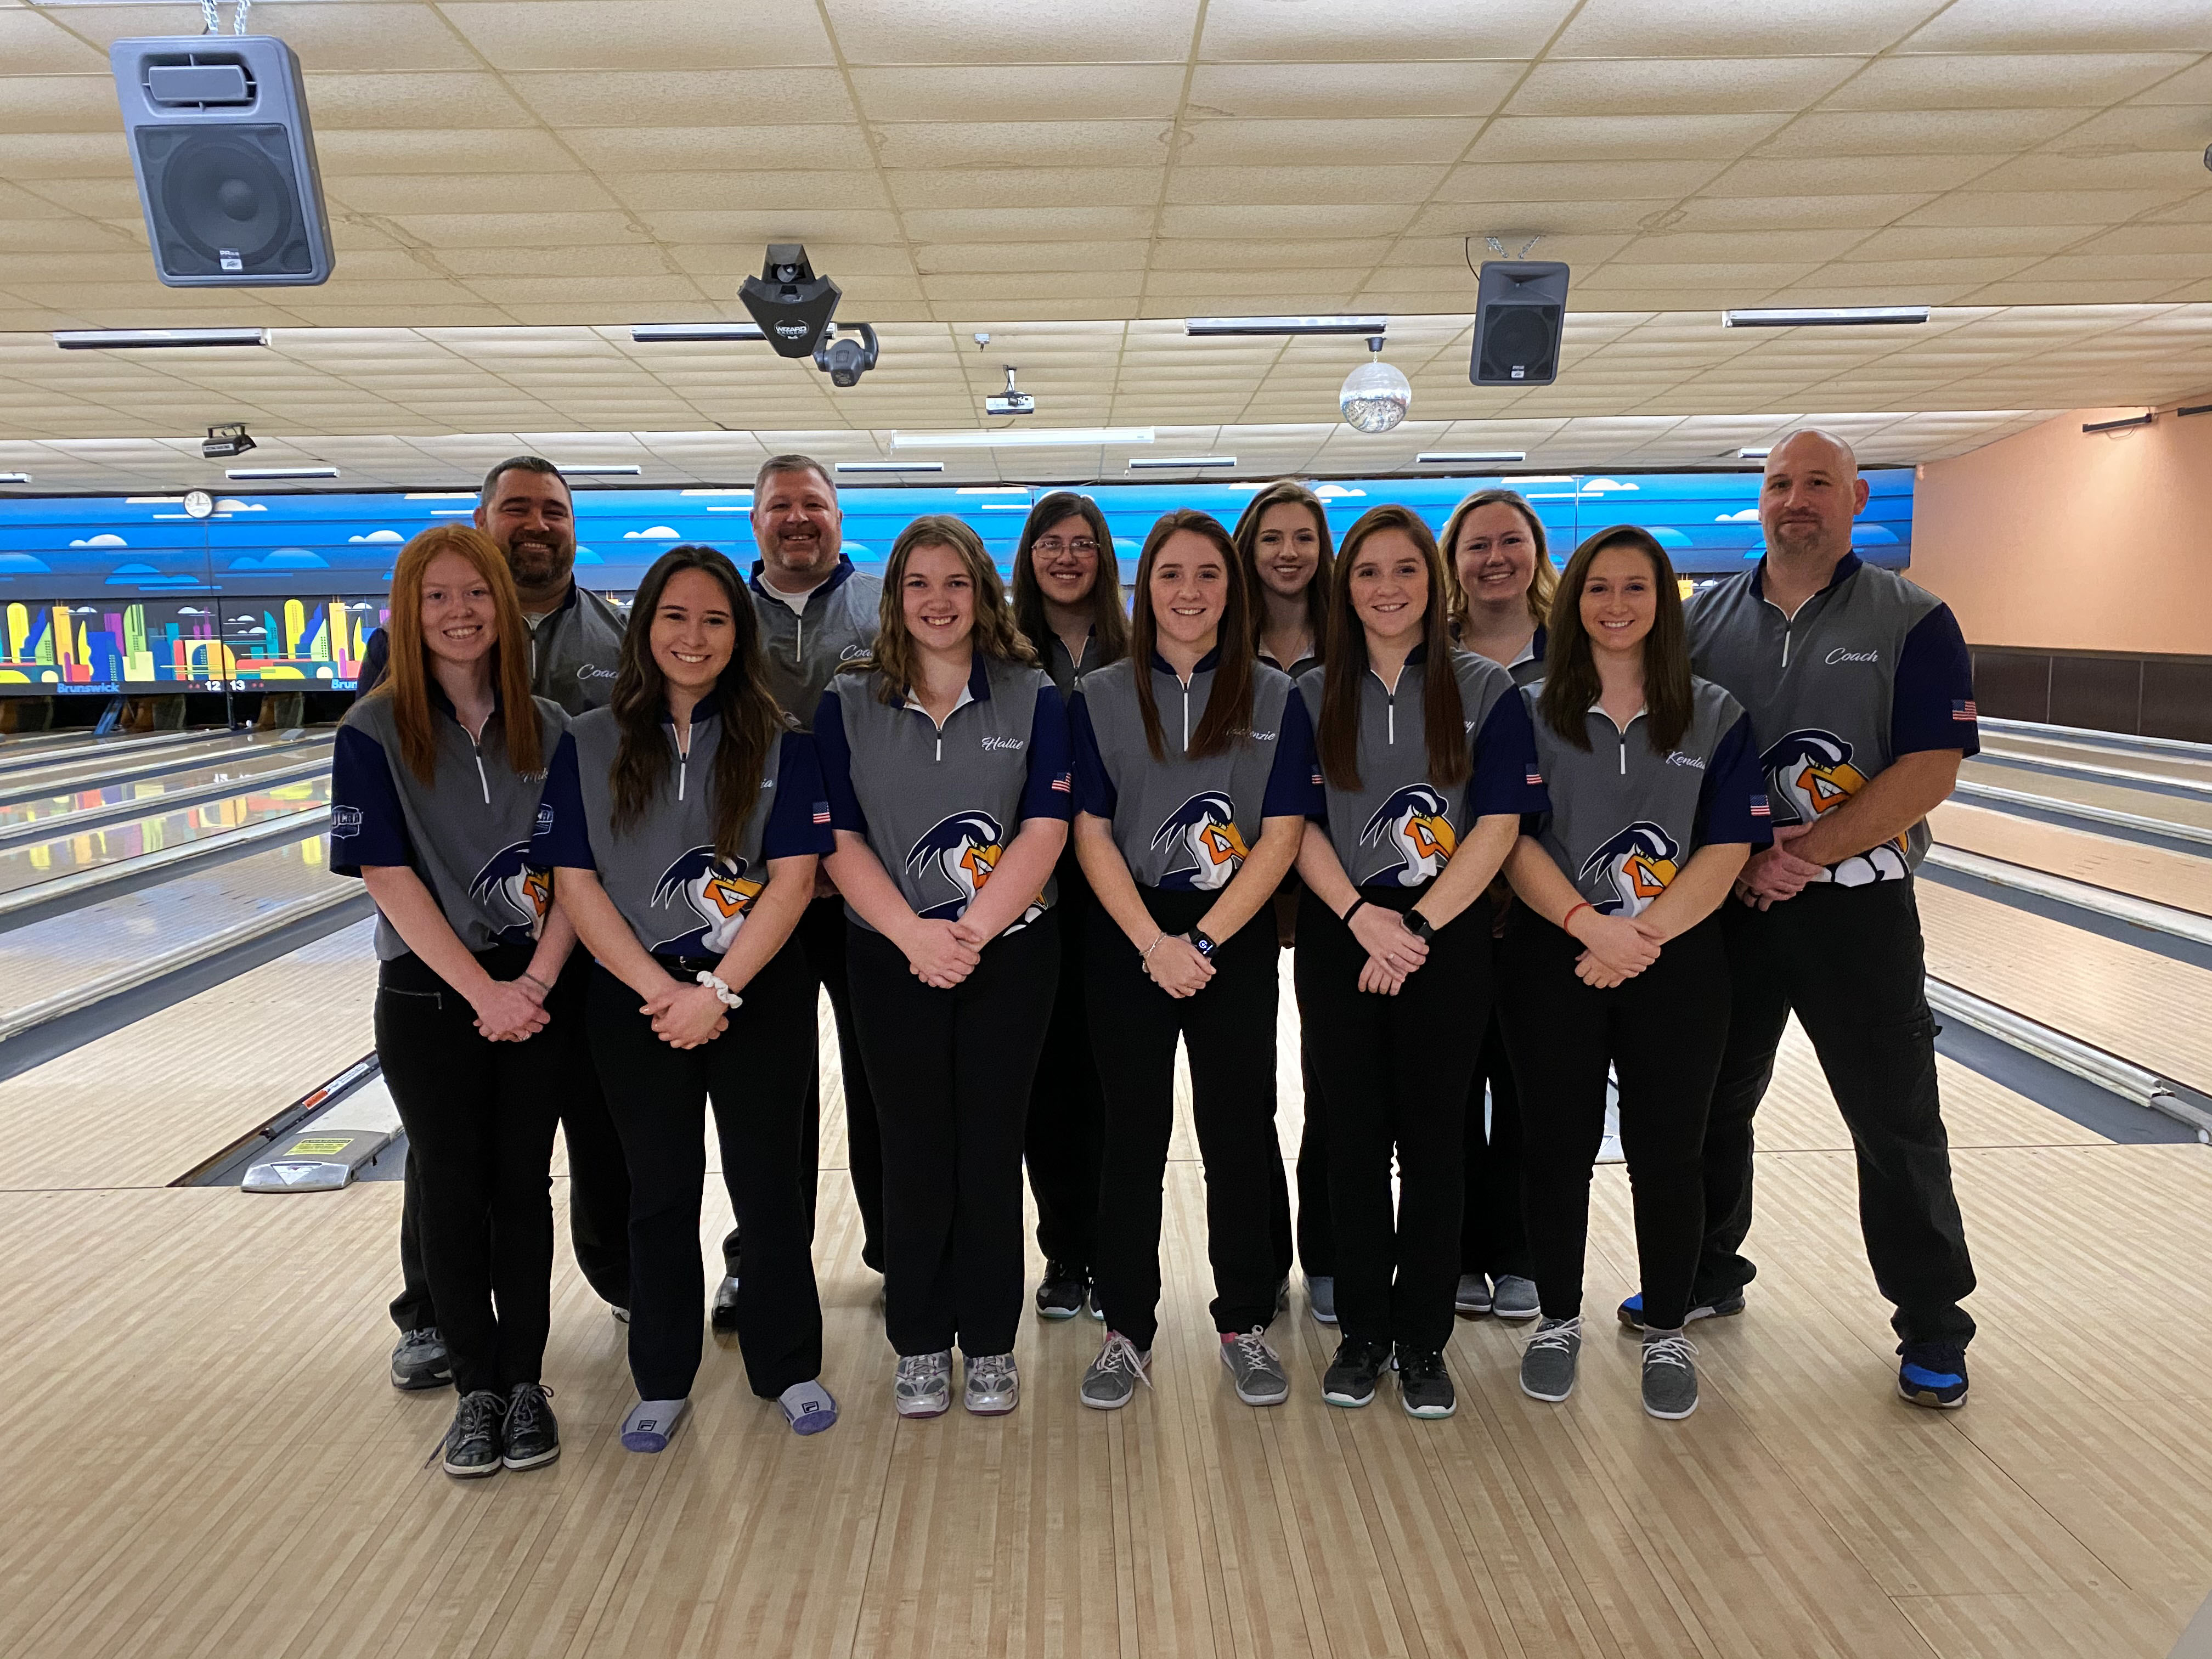 2019-2020 Women's Bowling Team Photo